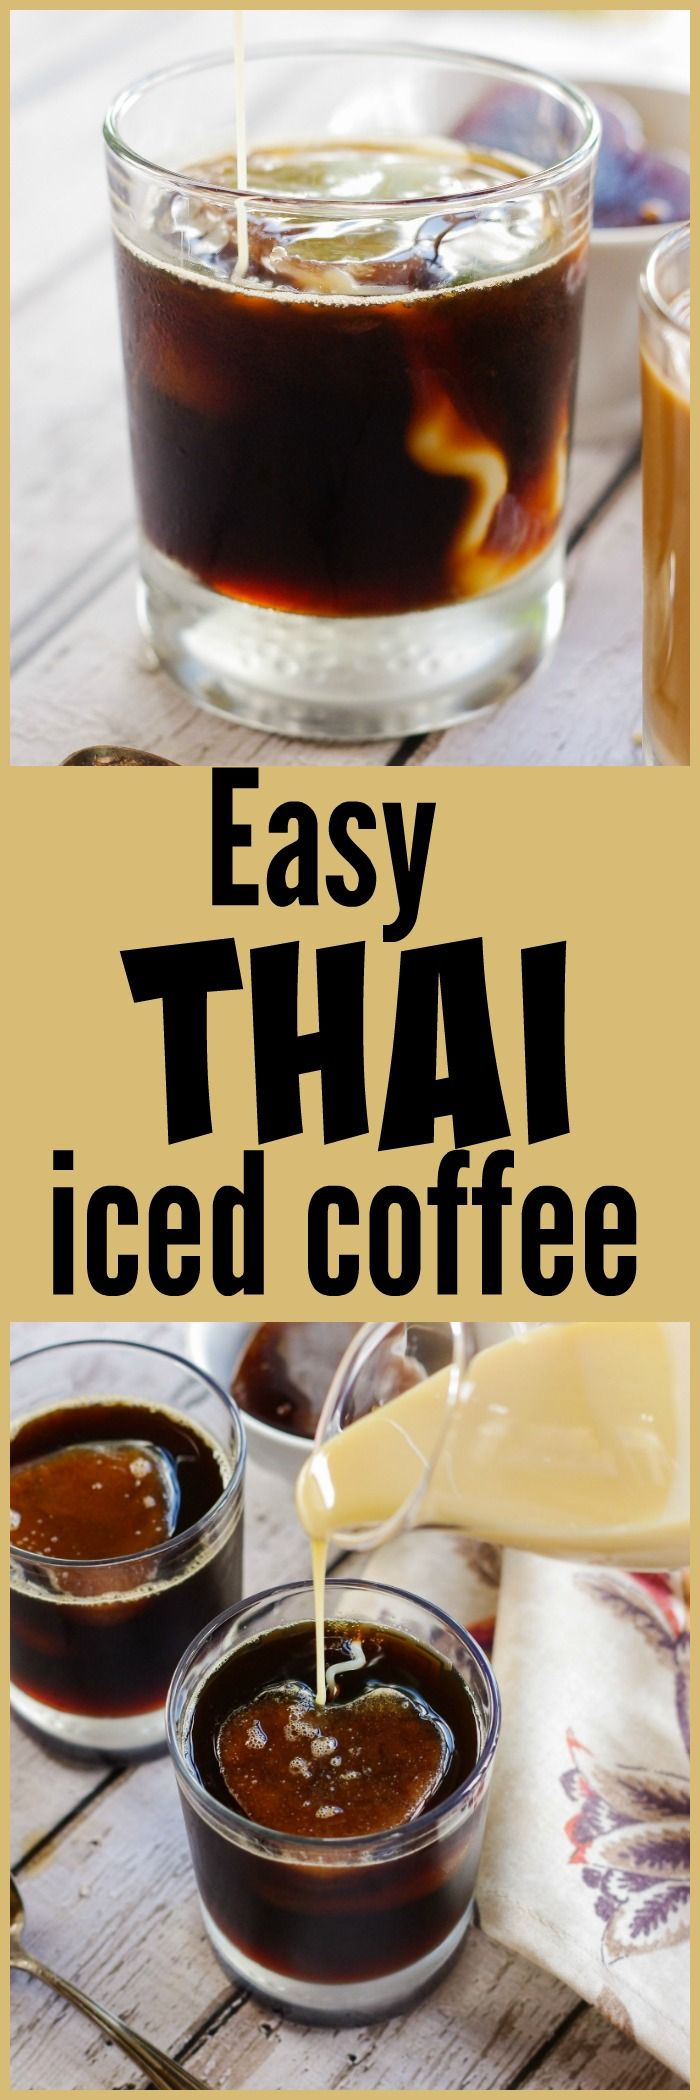 Easy Thai Iced Coffee | www.homeandplate.com | Become your own barista with this…